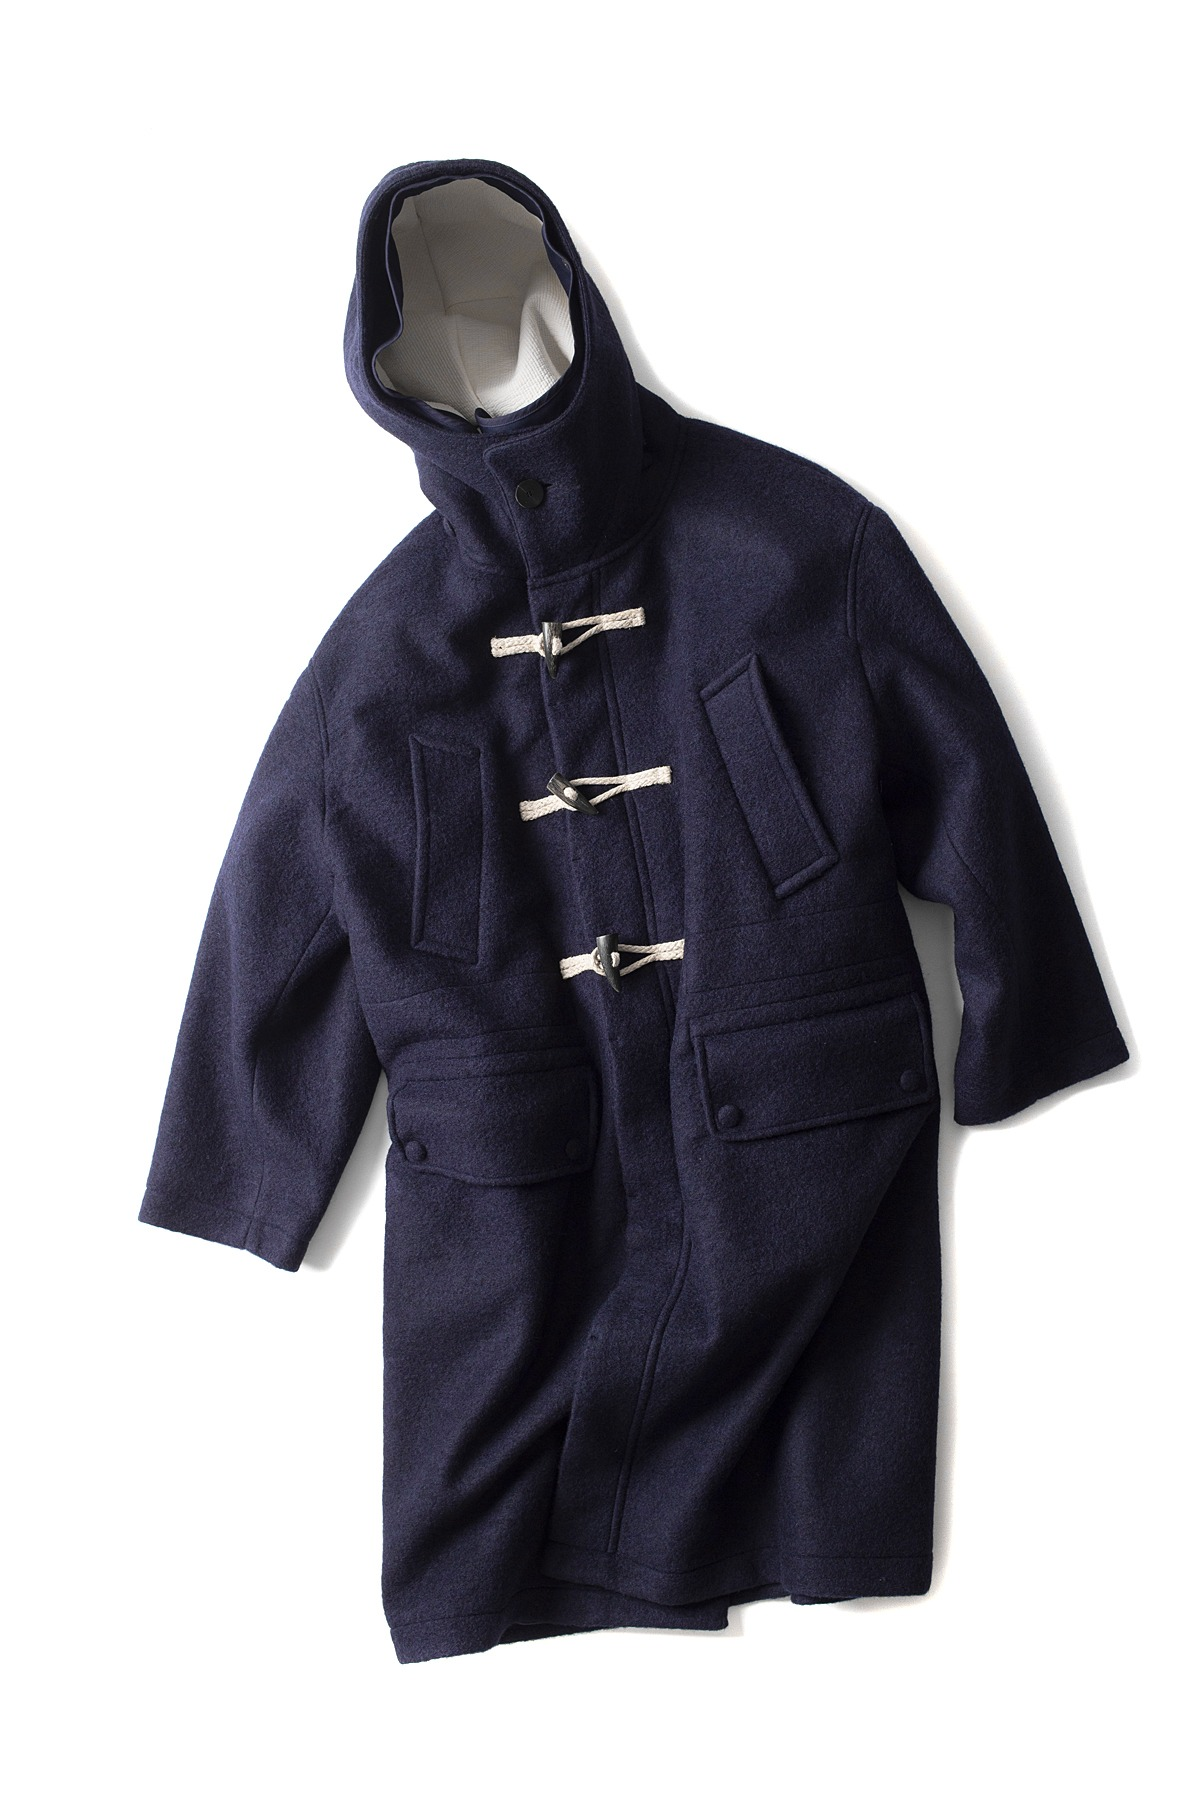 Document : The Document Wool Duffle Coat (Navy)